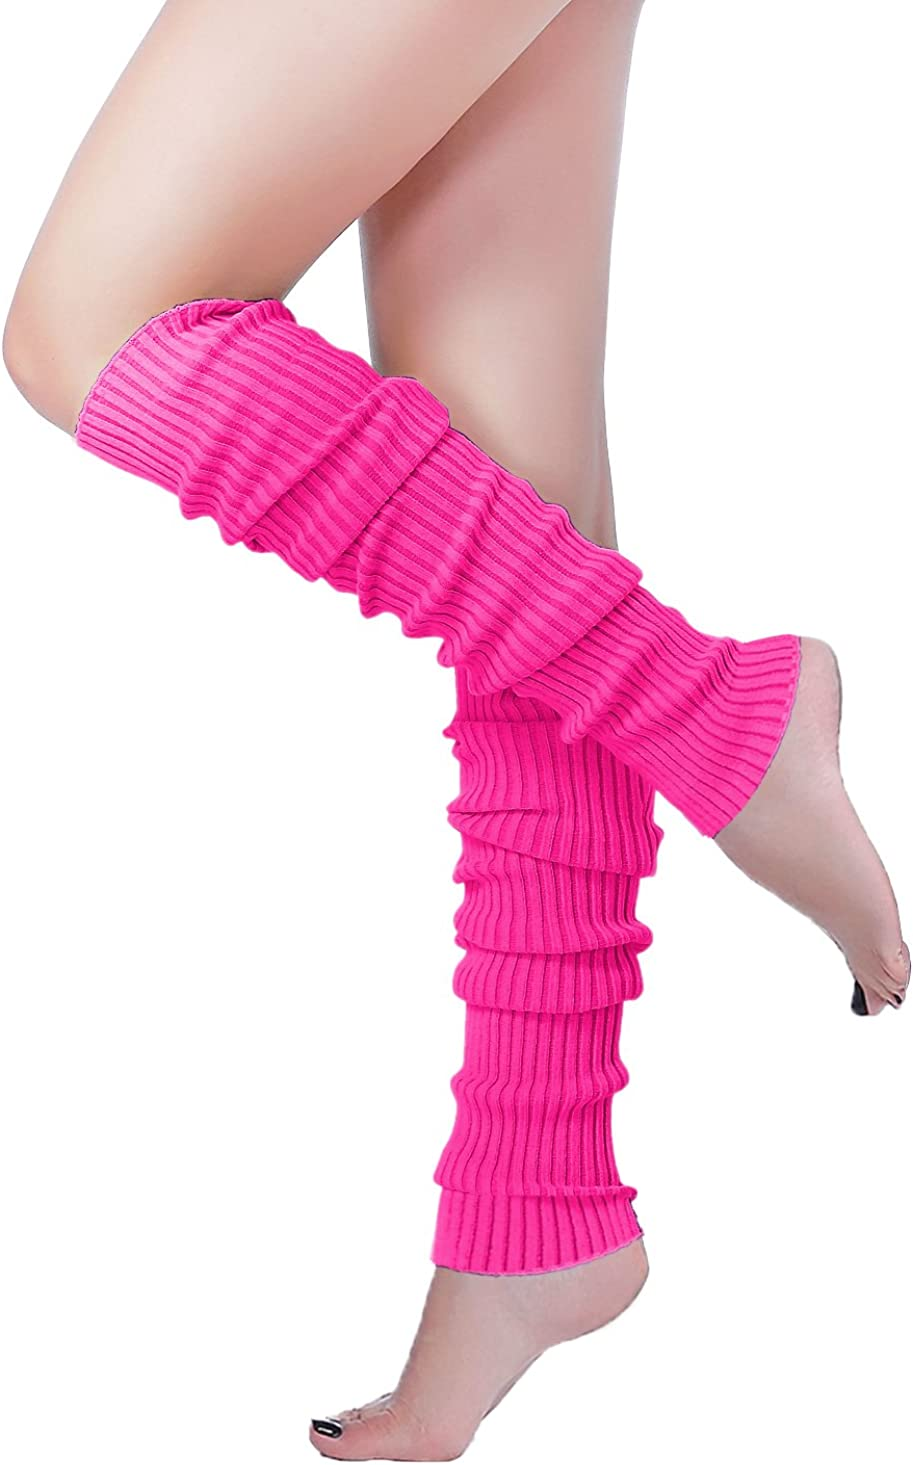 v28 Women Warm Leg Warmers 80s Selling Max 59% OFF Retro Party Costume Knit Ballet N